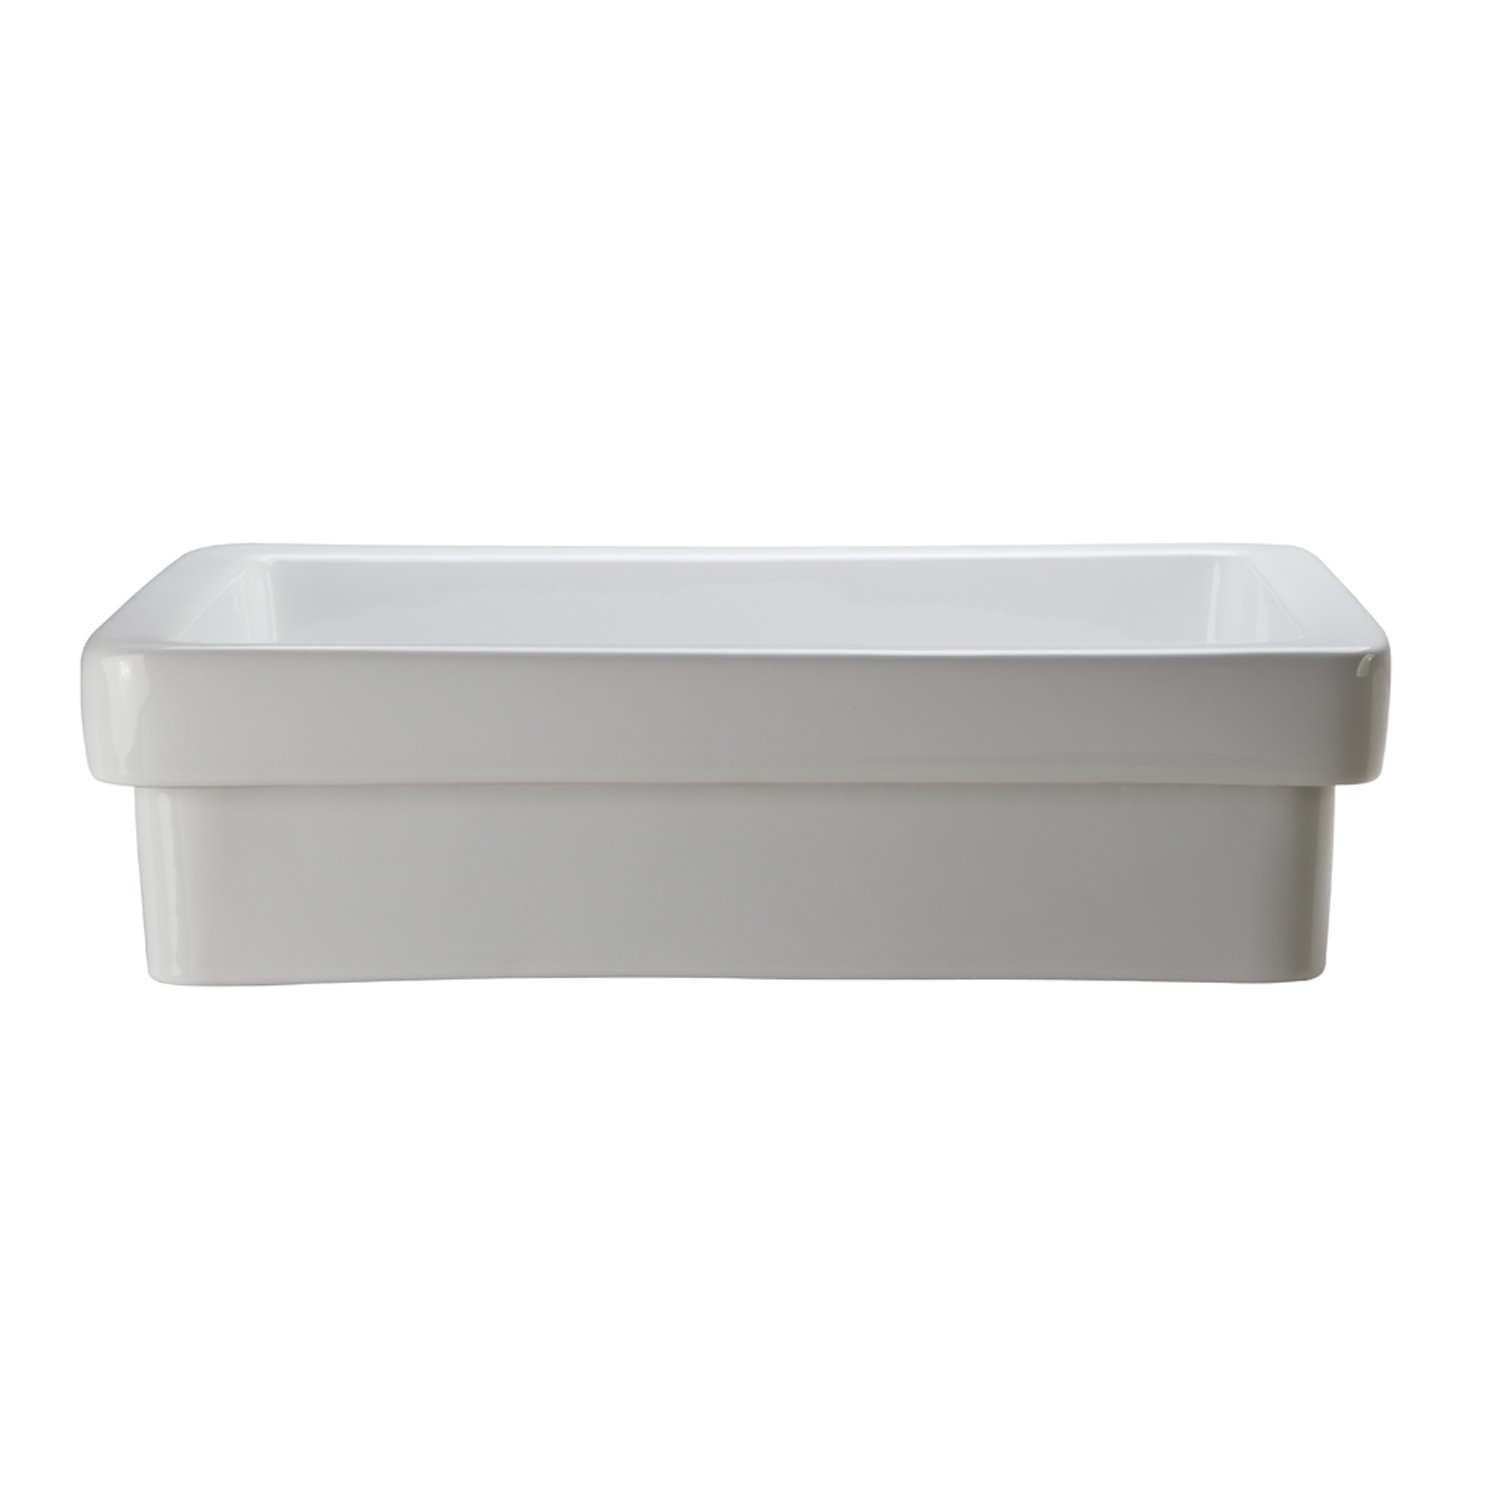 DECOLAV 1453-CWH Ambre Classically Redefined Semi-Recessed Lavatory Sink, White